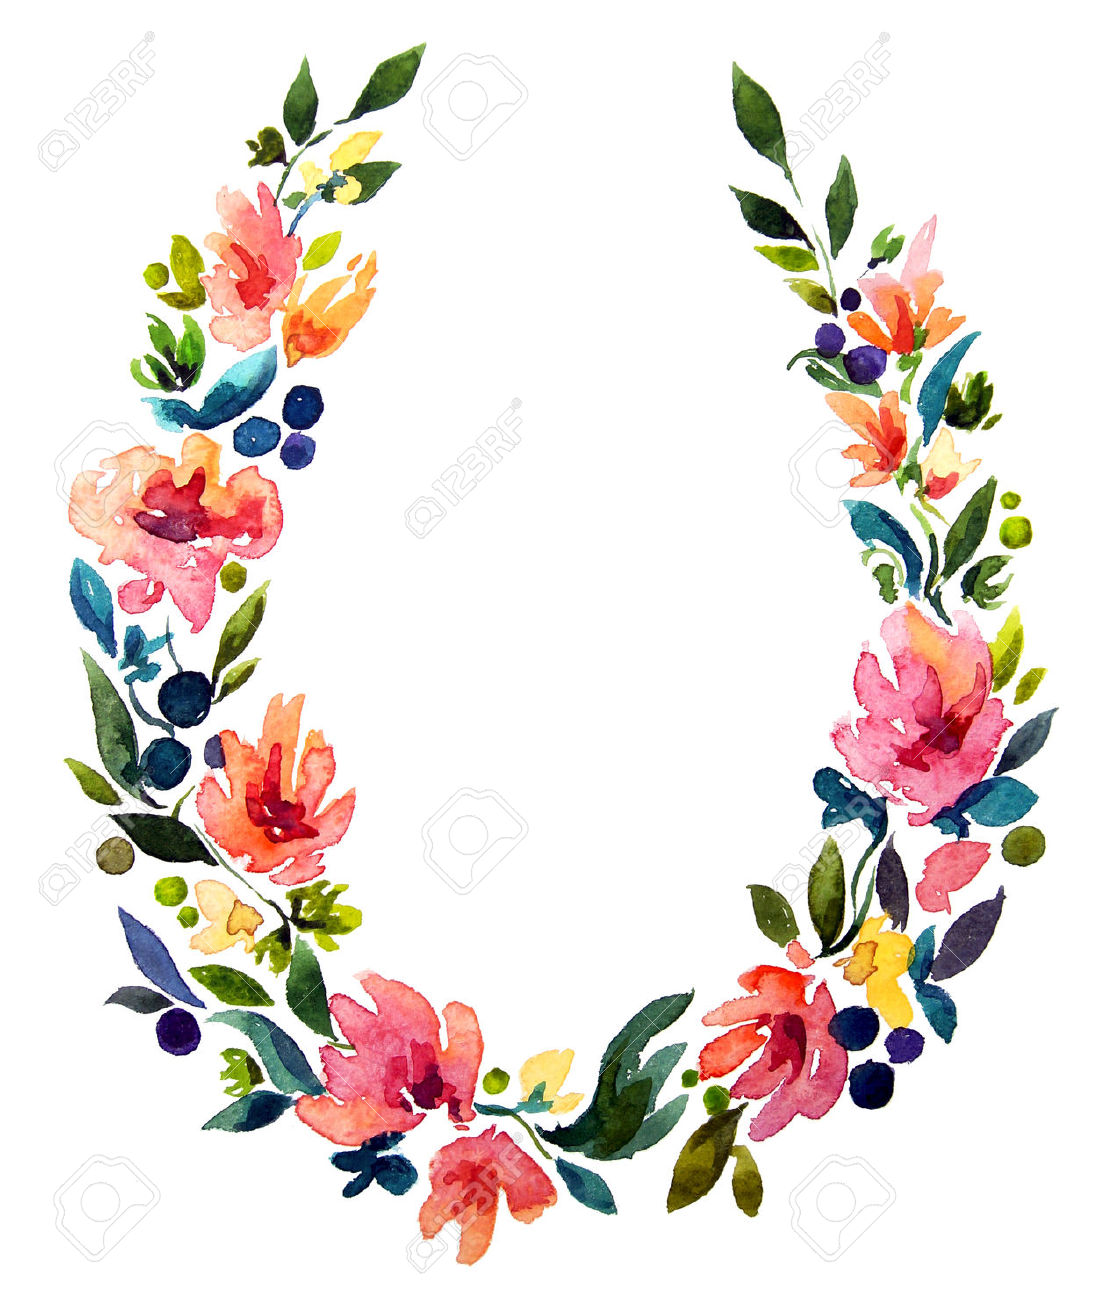 Floral wreath clipart.